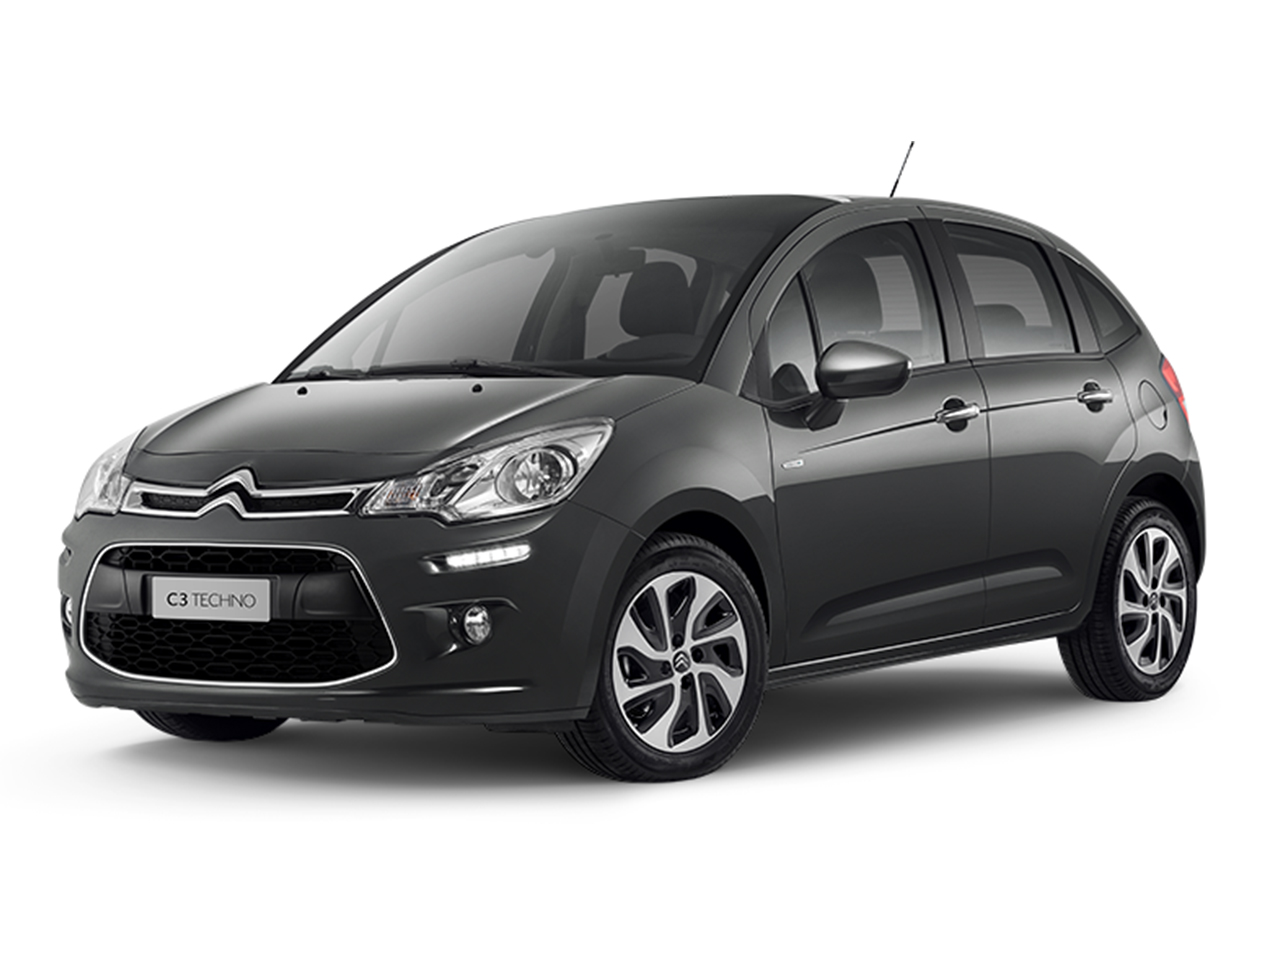 2018 citroen c3 prices in uae gulf specs reviews for dubai abu dhabi and sharjah yallamotor. Black Bedroom Furniture Sets. Home Design Ideas